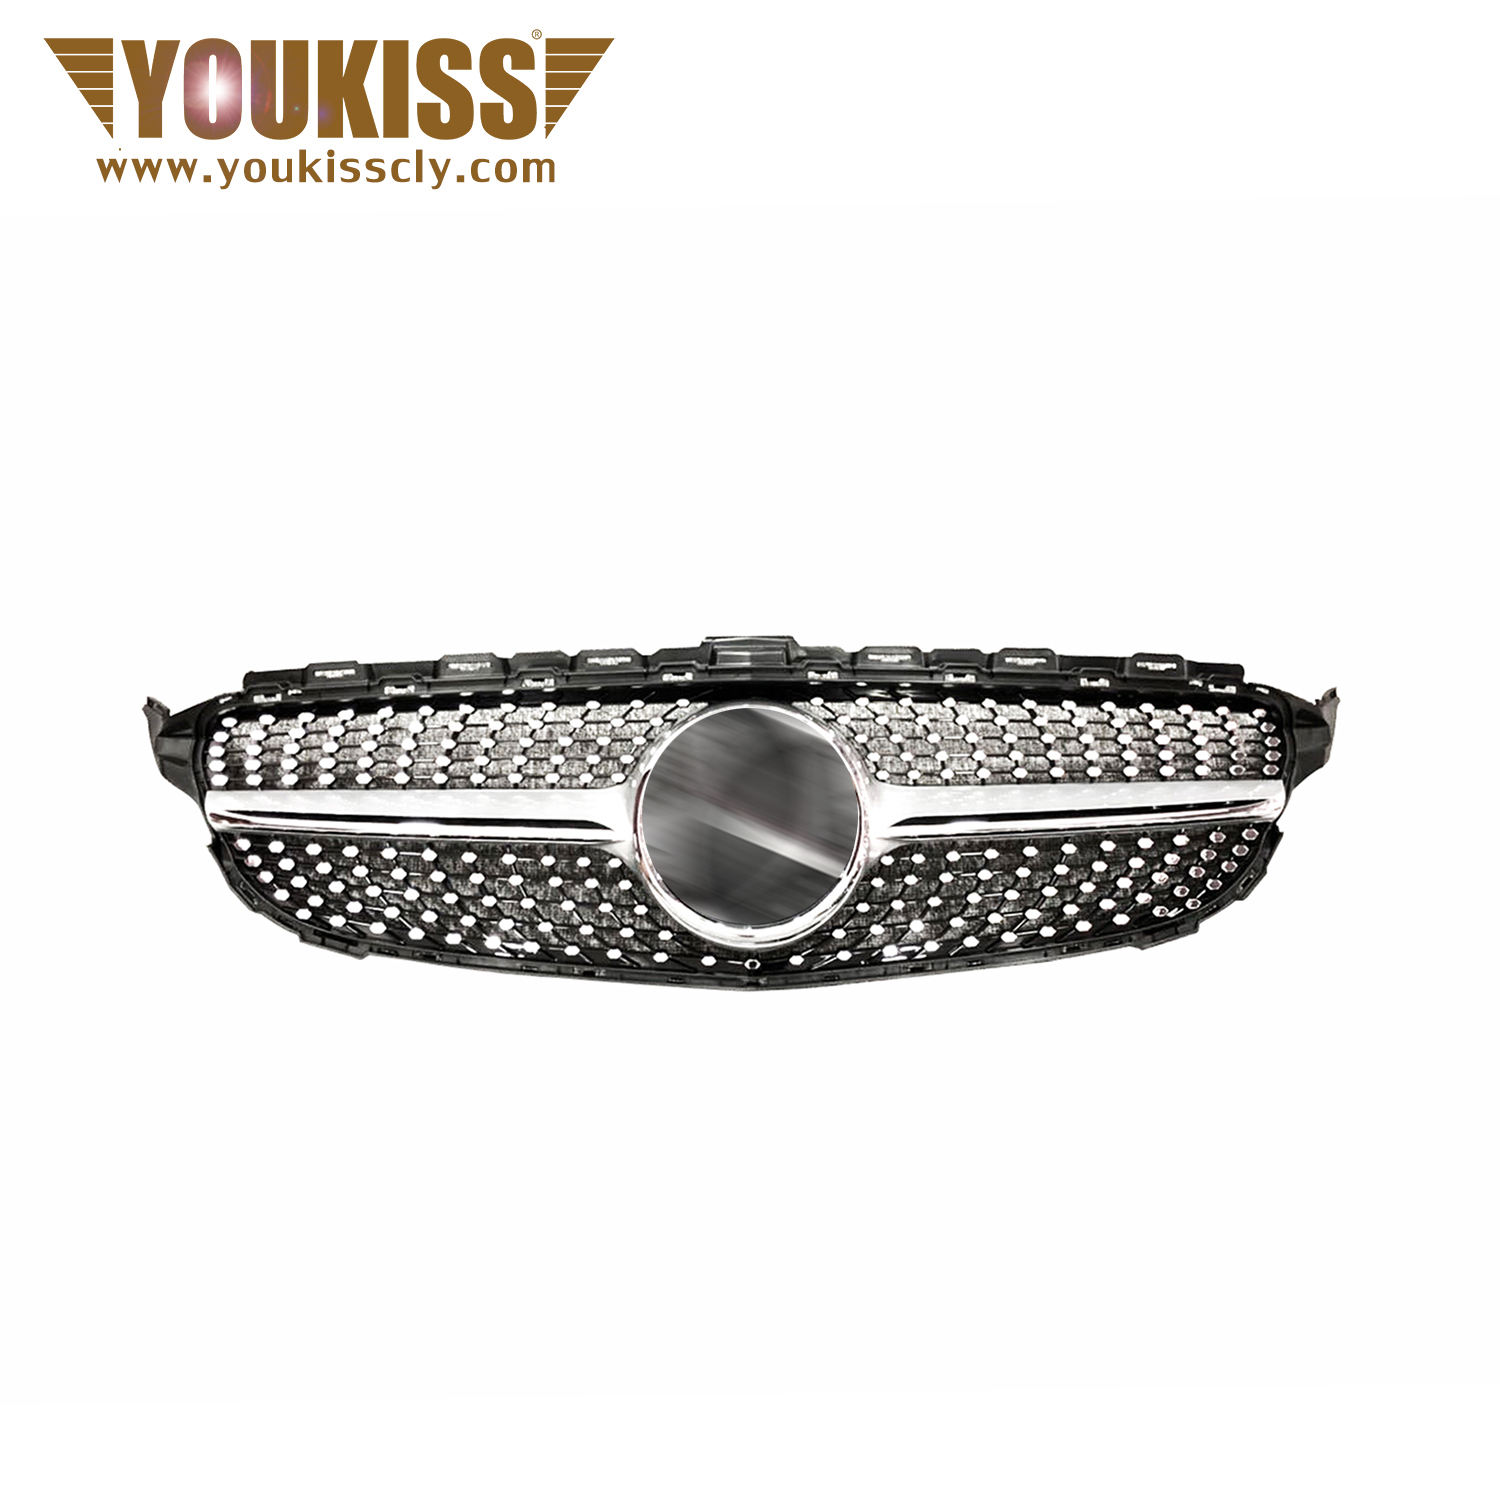 RTS,For benz w205 C CLASS Grille change to Mercedes Benz W205 diamond Style Black high guality general front grille